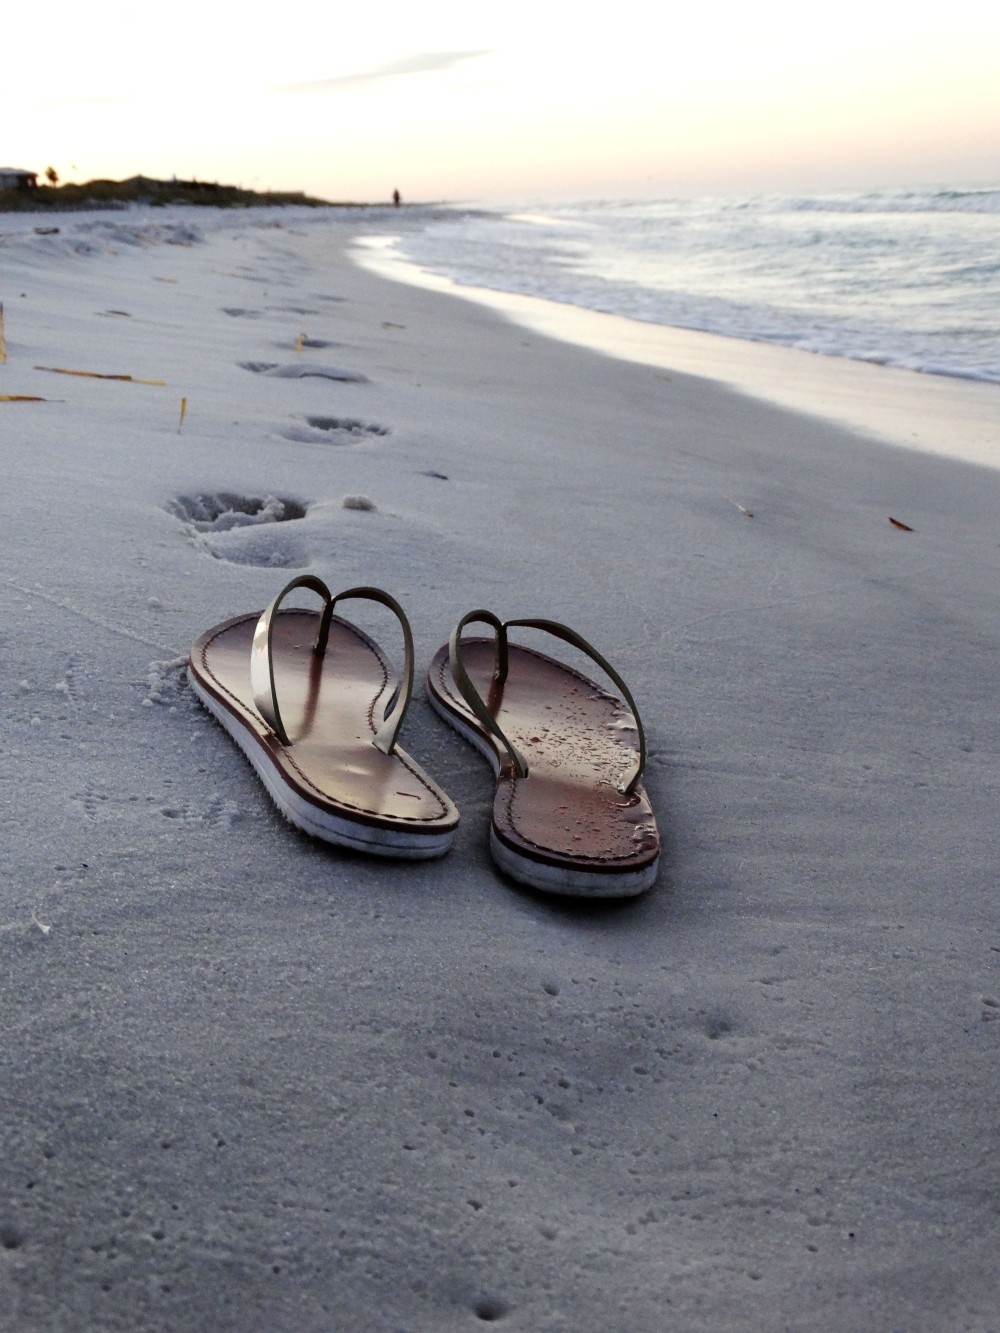 Image of a pair of flip flops in the sand behind multiple footsteps next to the ocean. The sunrise is visible in the background.